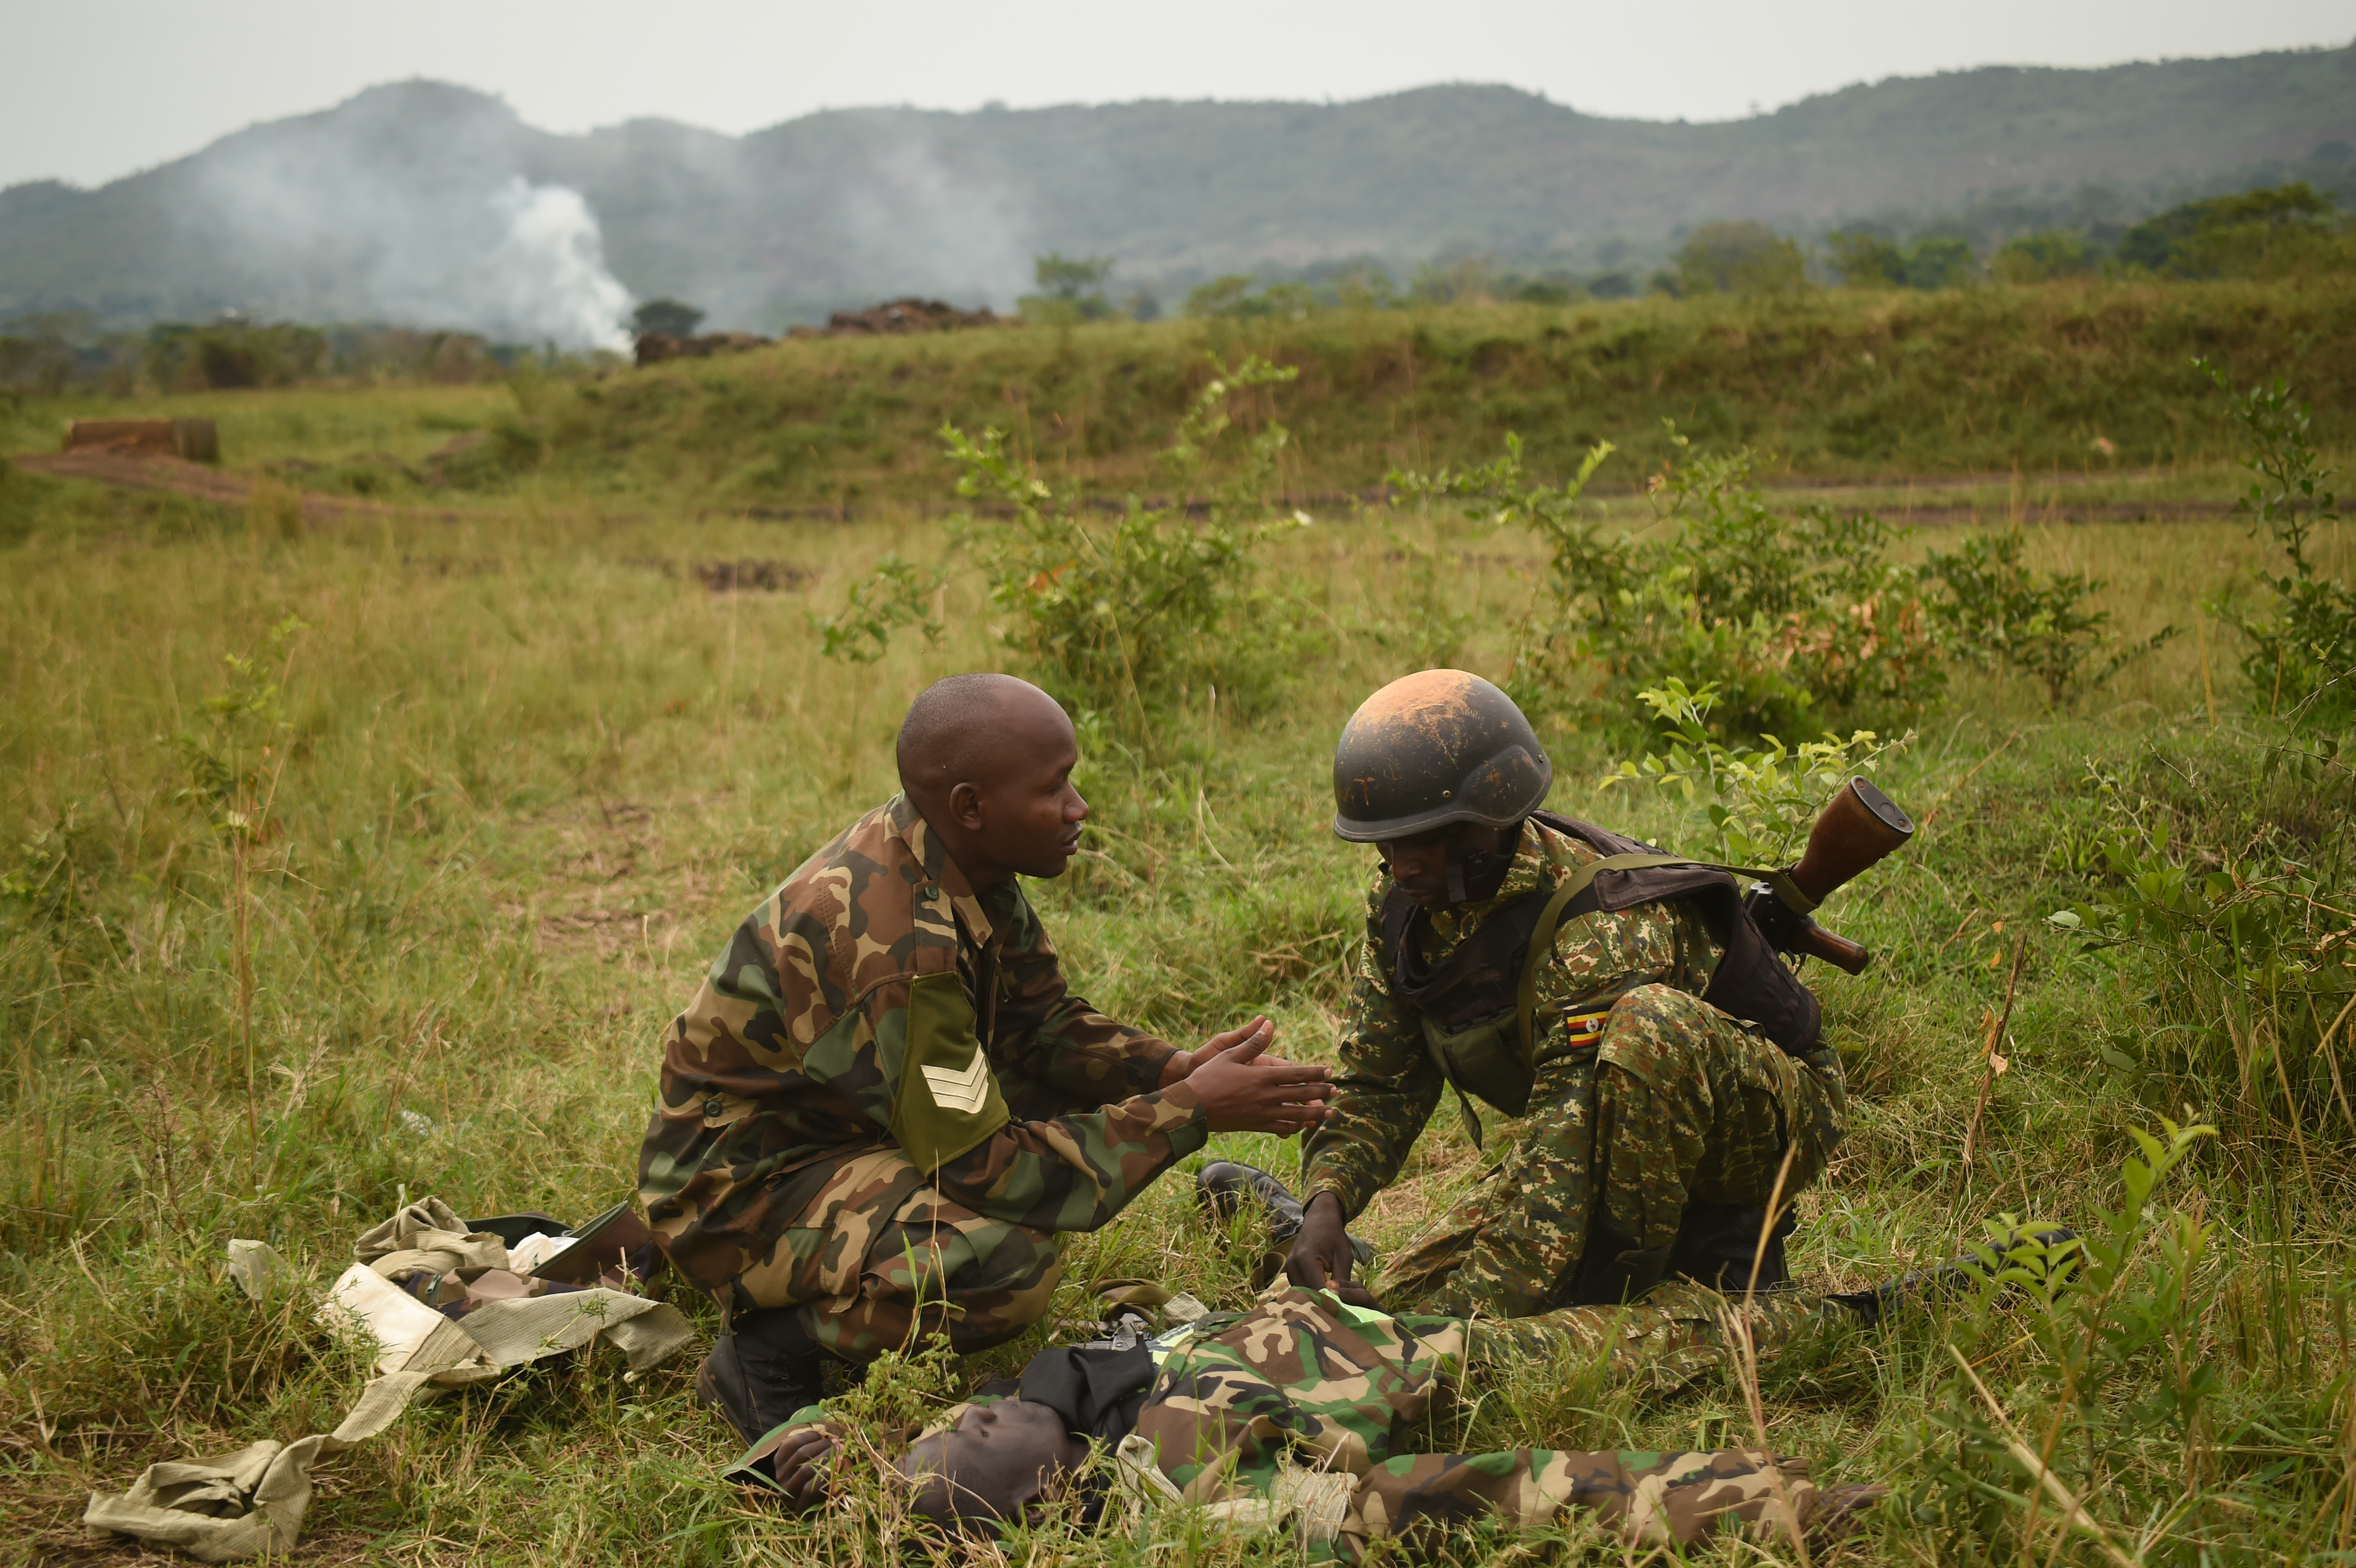 A Uganda People's Defense Force (UPDF) cadre member instructs a soldier during a medical exercise at Camp Singo, March 3, 2017. UPDF soldiers assigned to Ugandan Battle Group 22 employed skills acquired from their predeployment training such as nine-line medical evacuation, combat lifesaving techniques and casualty extraction. (U.S. Air National Guard photo by Staff Sgt. Penny Snoozy)